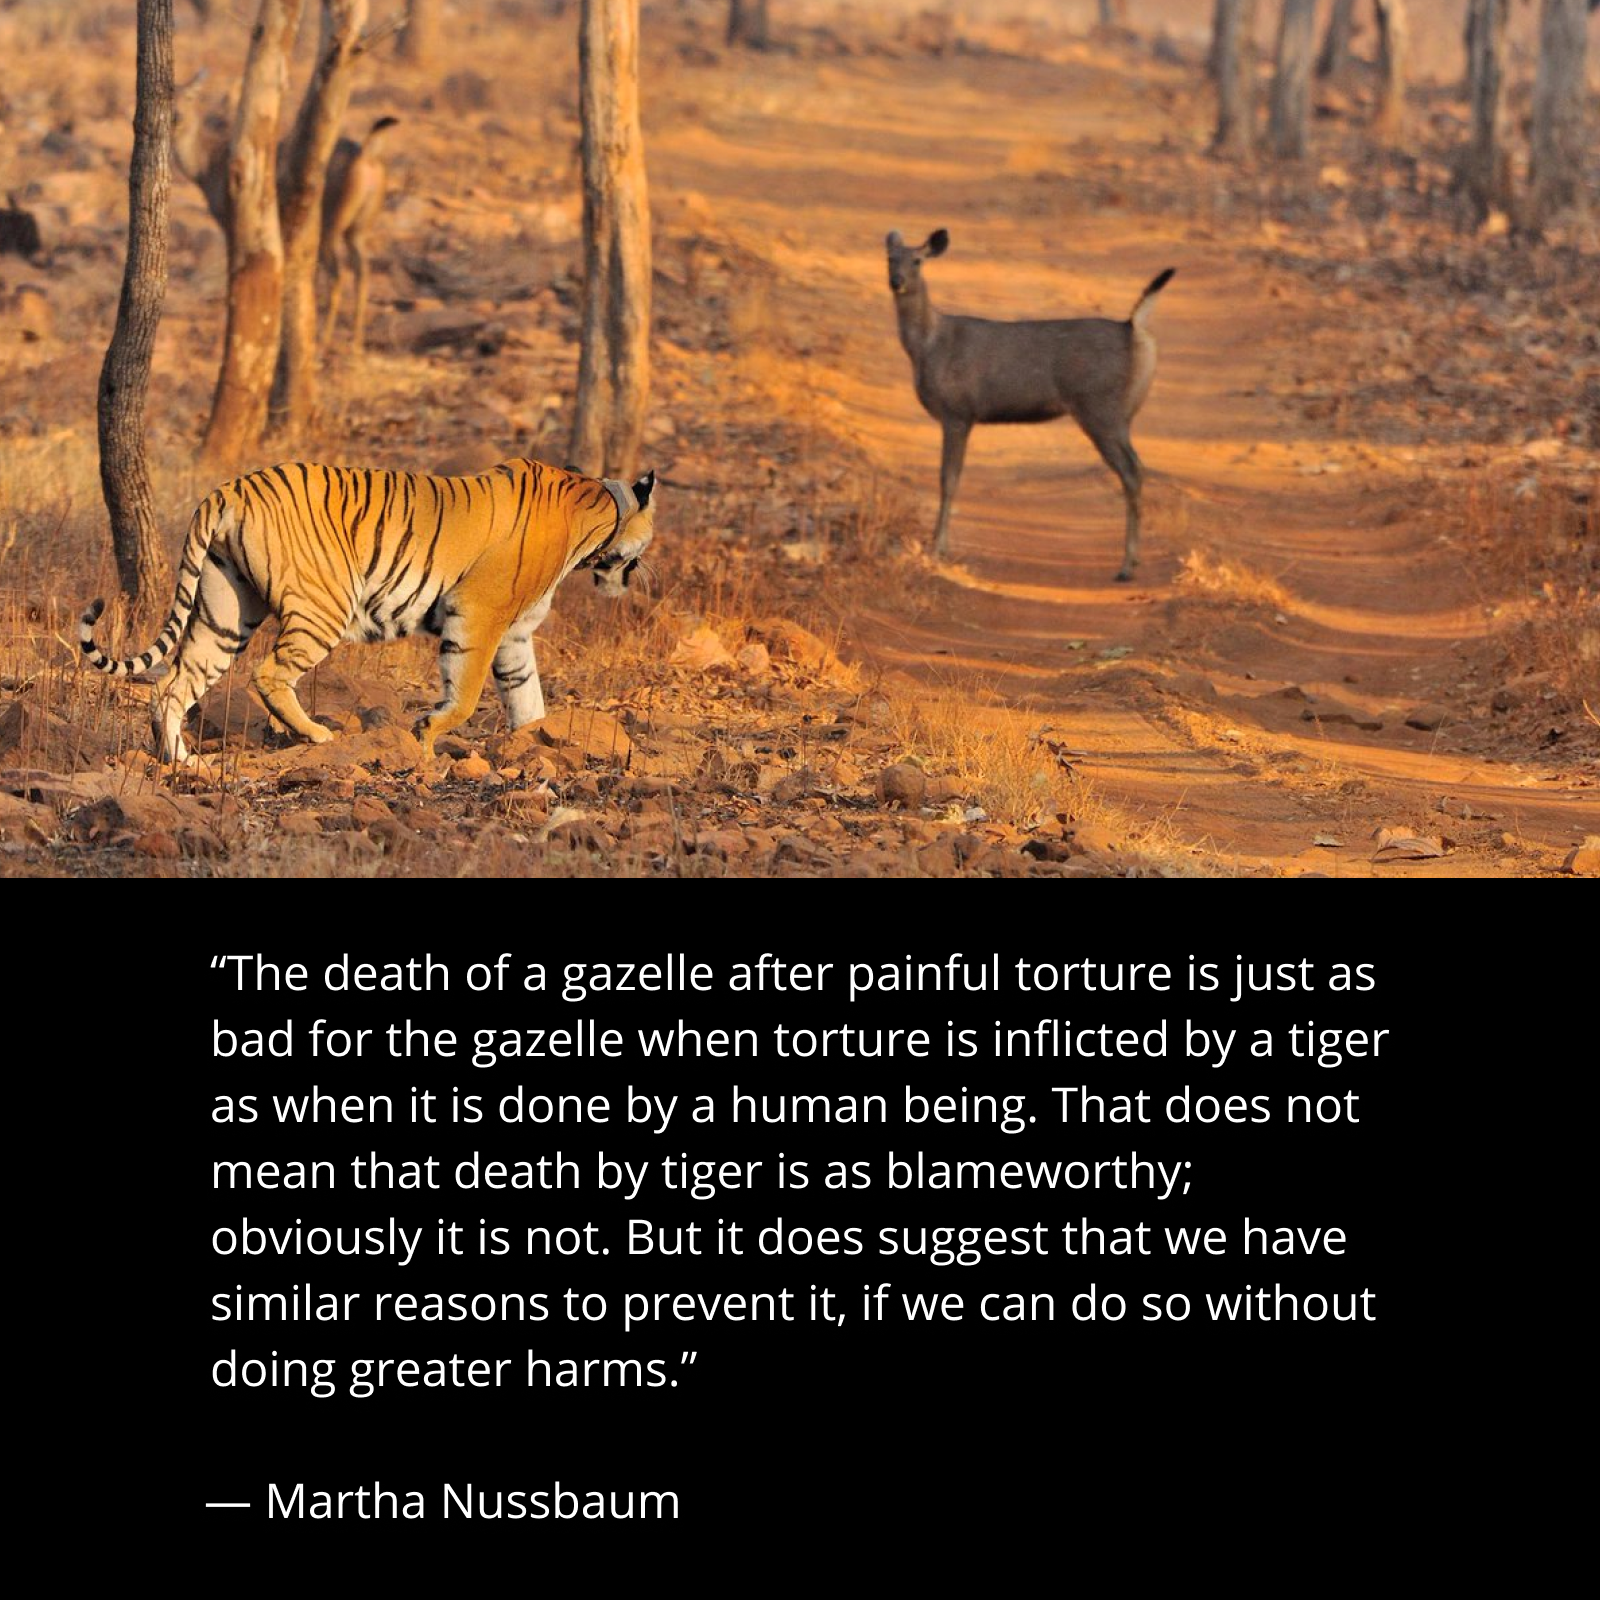 """The death of a gazelle after painful torture is just as bad for the gazelle when torture is inflicted by a tiger as when it is done by a human being…"" -Martha Nussbaum [1600 x 1600]"